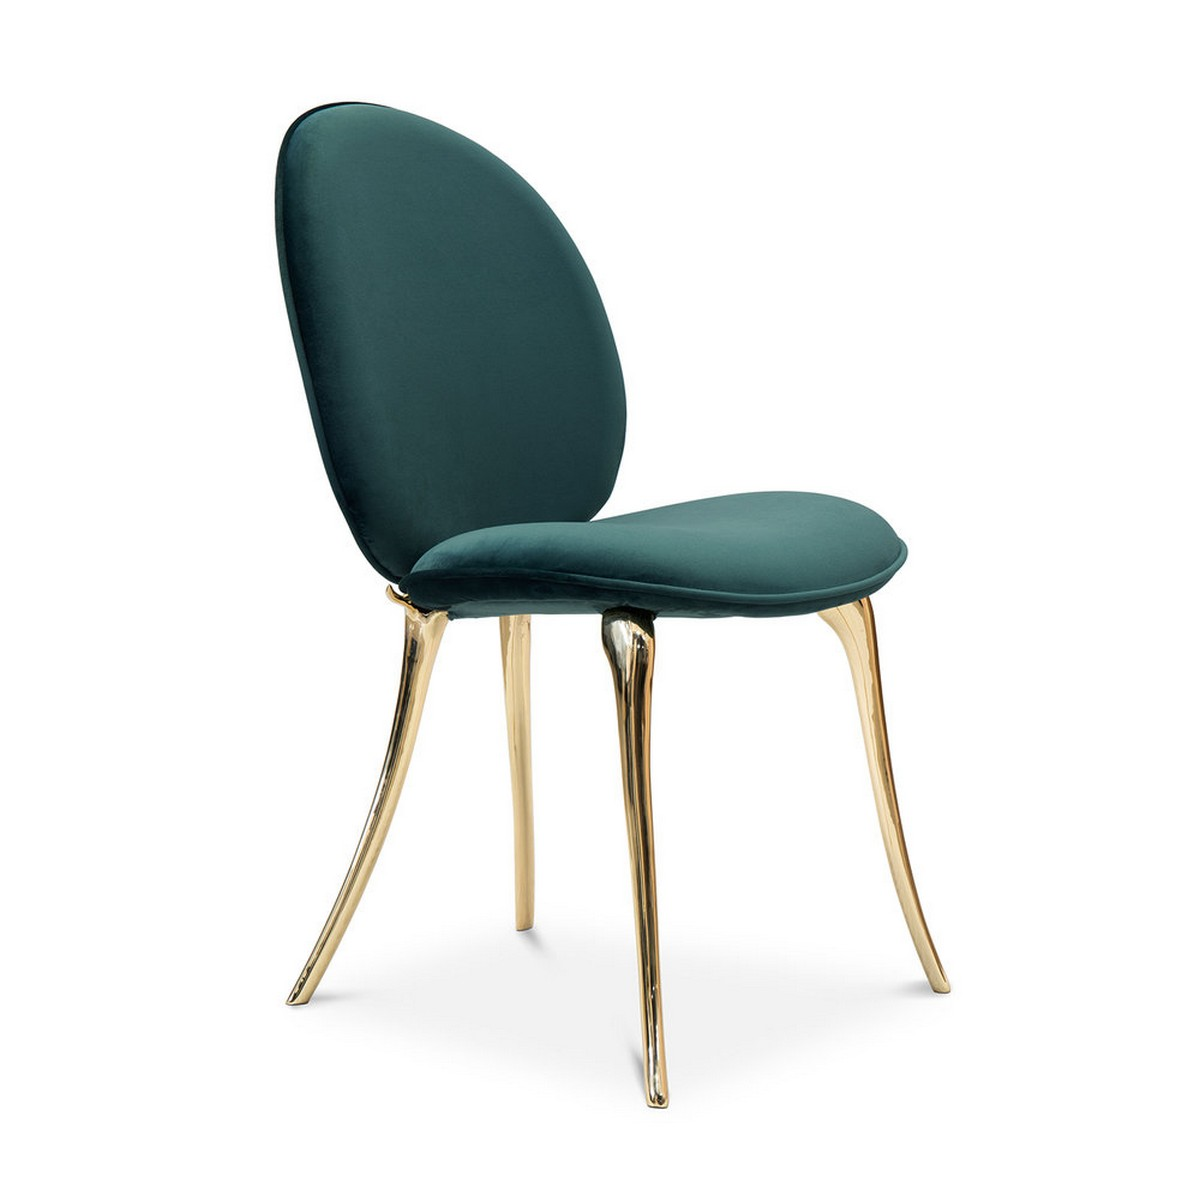 Maison et Objet 2019: Exclusive Dining Chairs at Covet House Maison et Objet Maison et Objet 2019: Exclusive Dining Chairs at Covet House soleil 1